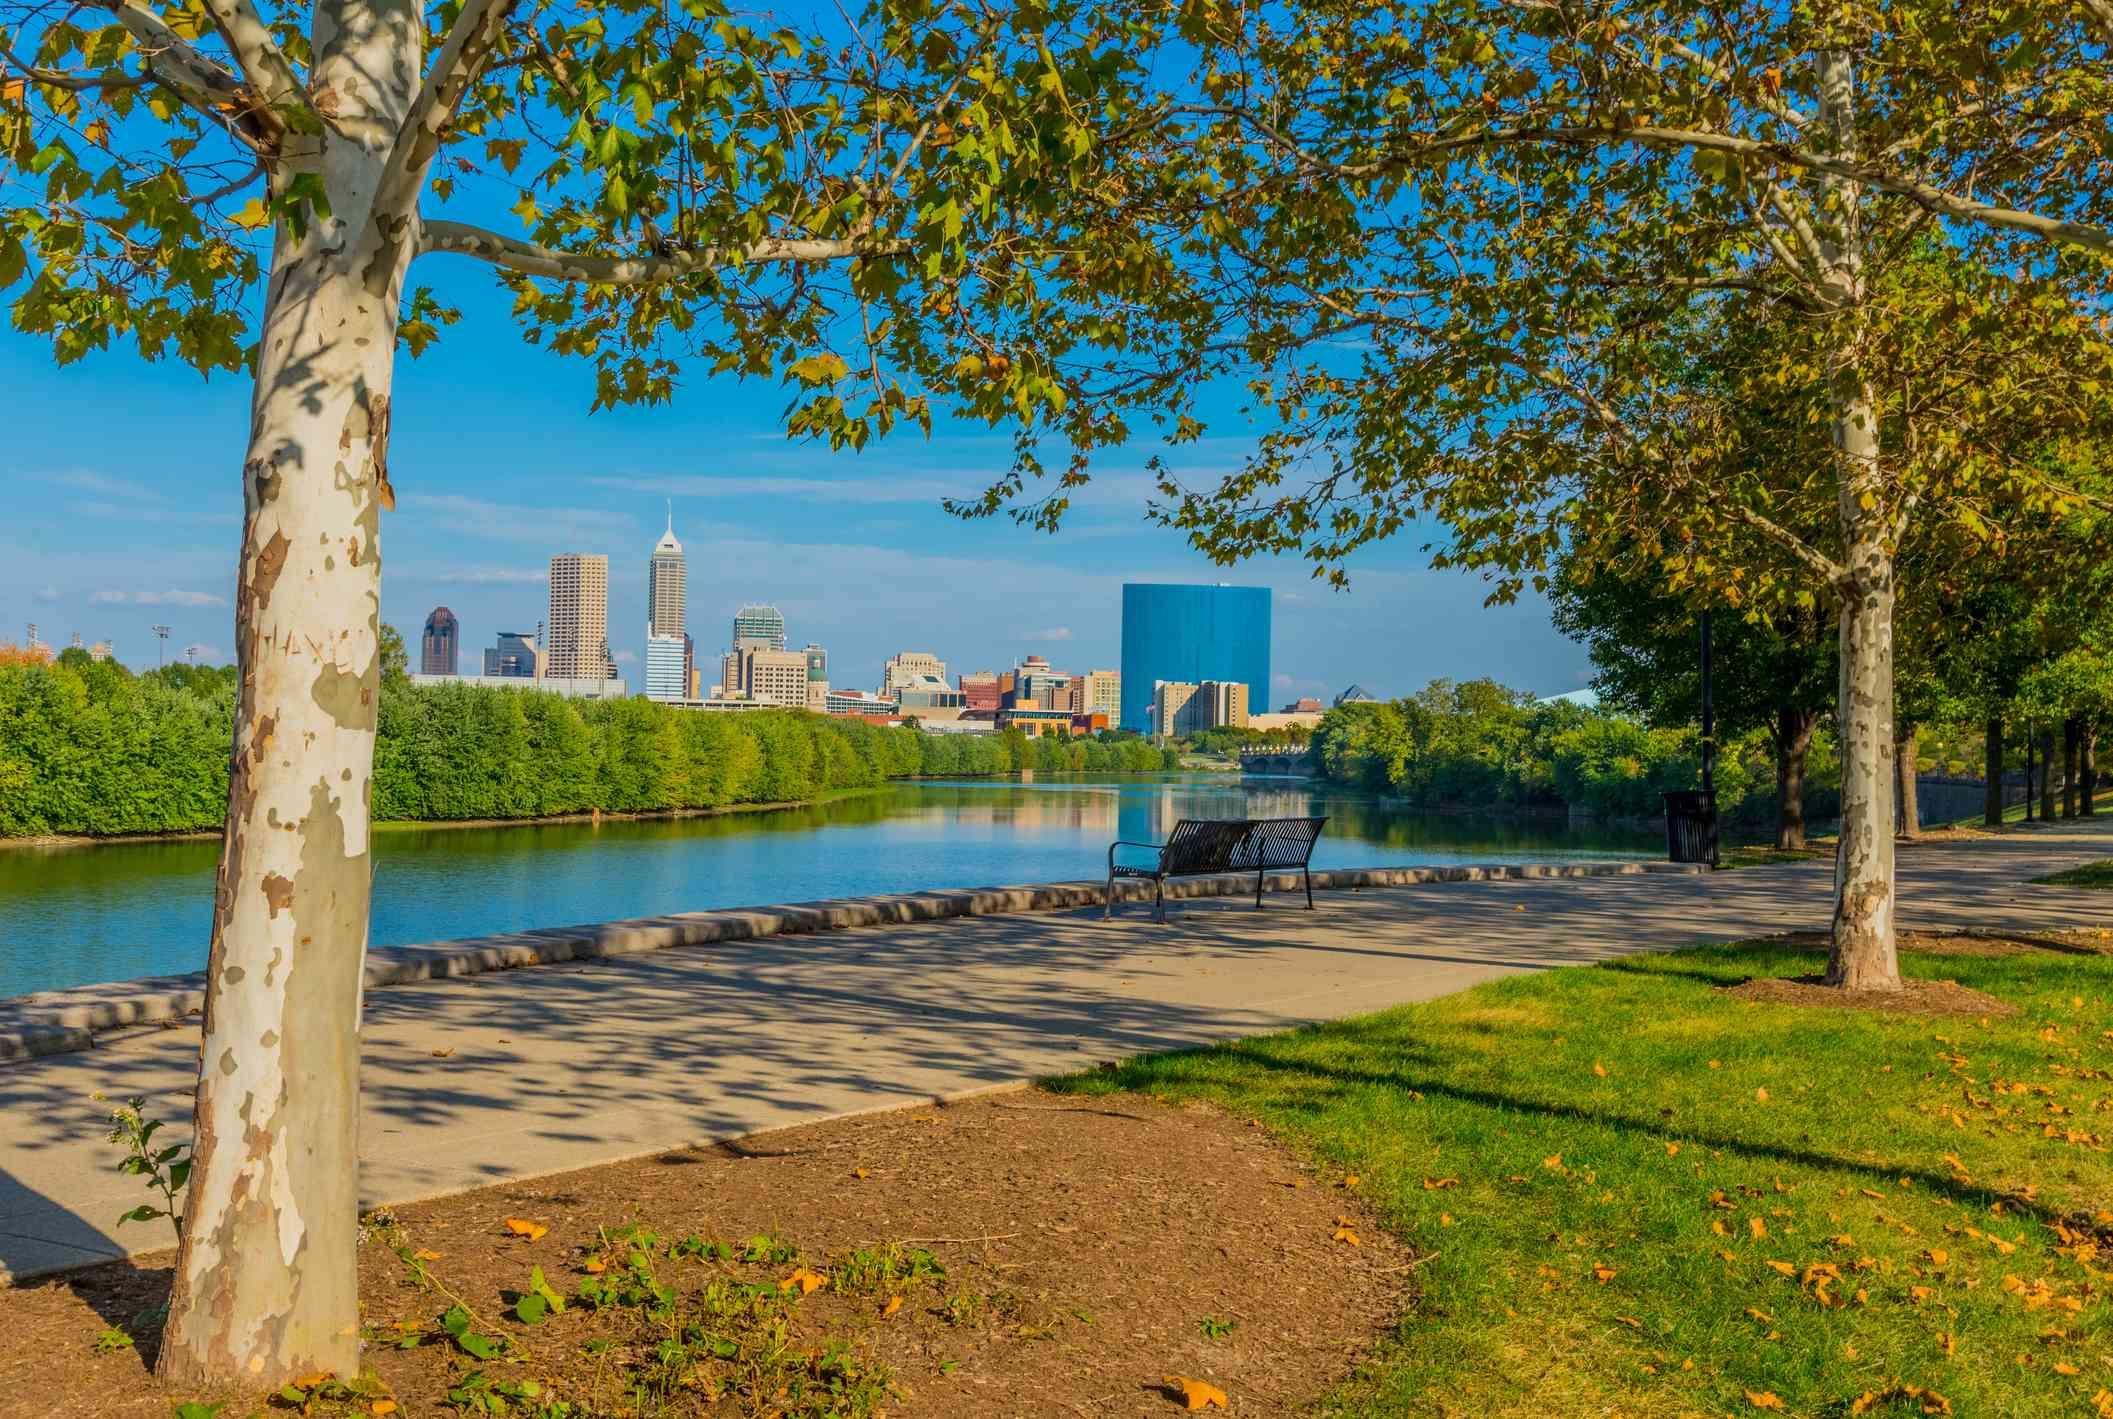 The White River with Skyscrapers of Indianapolis skyline, Indiana